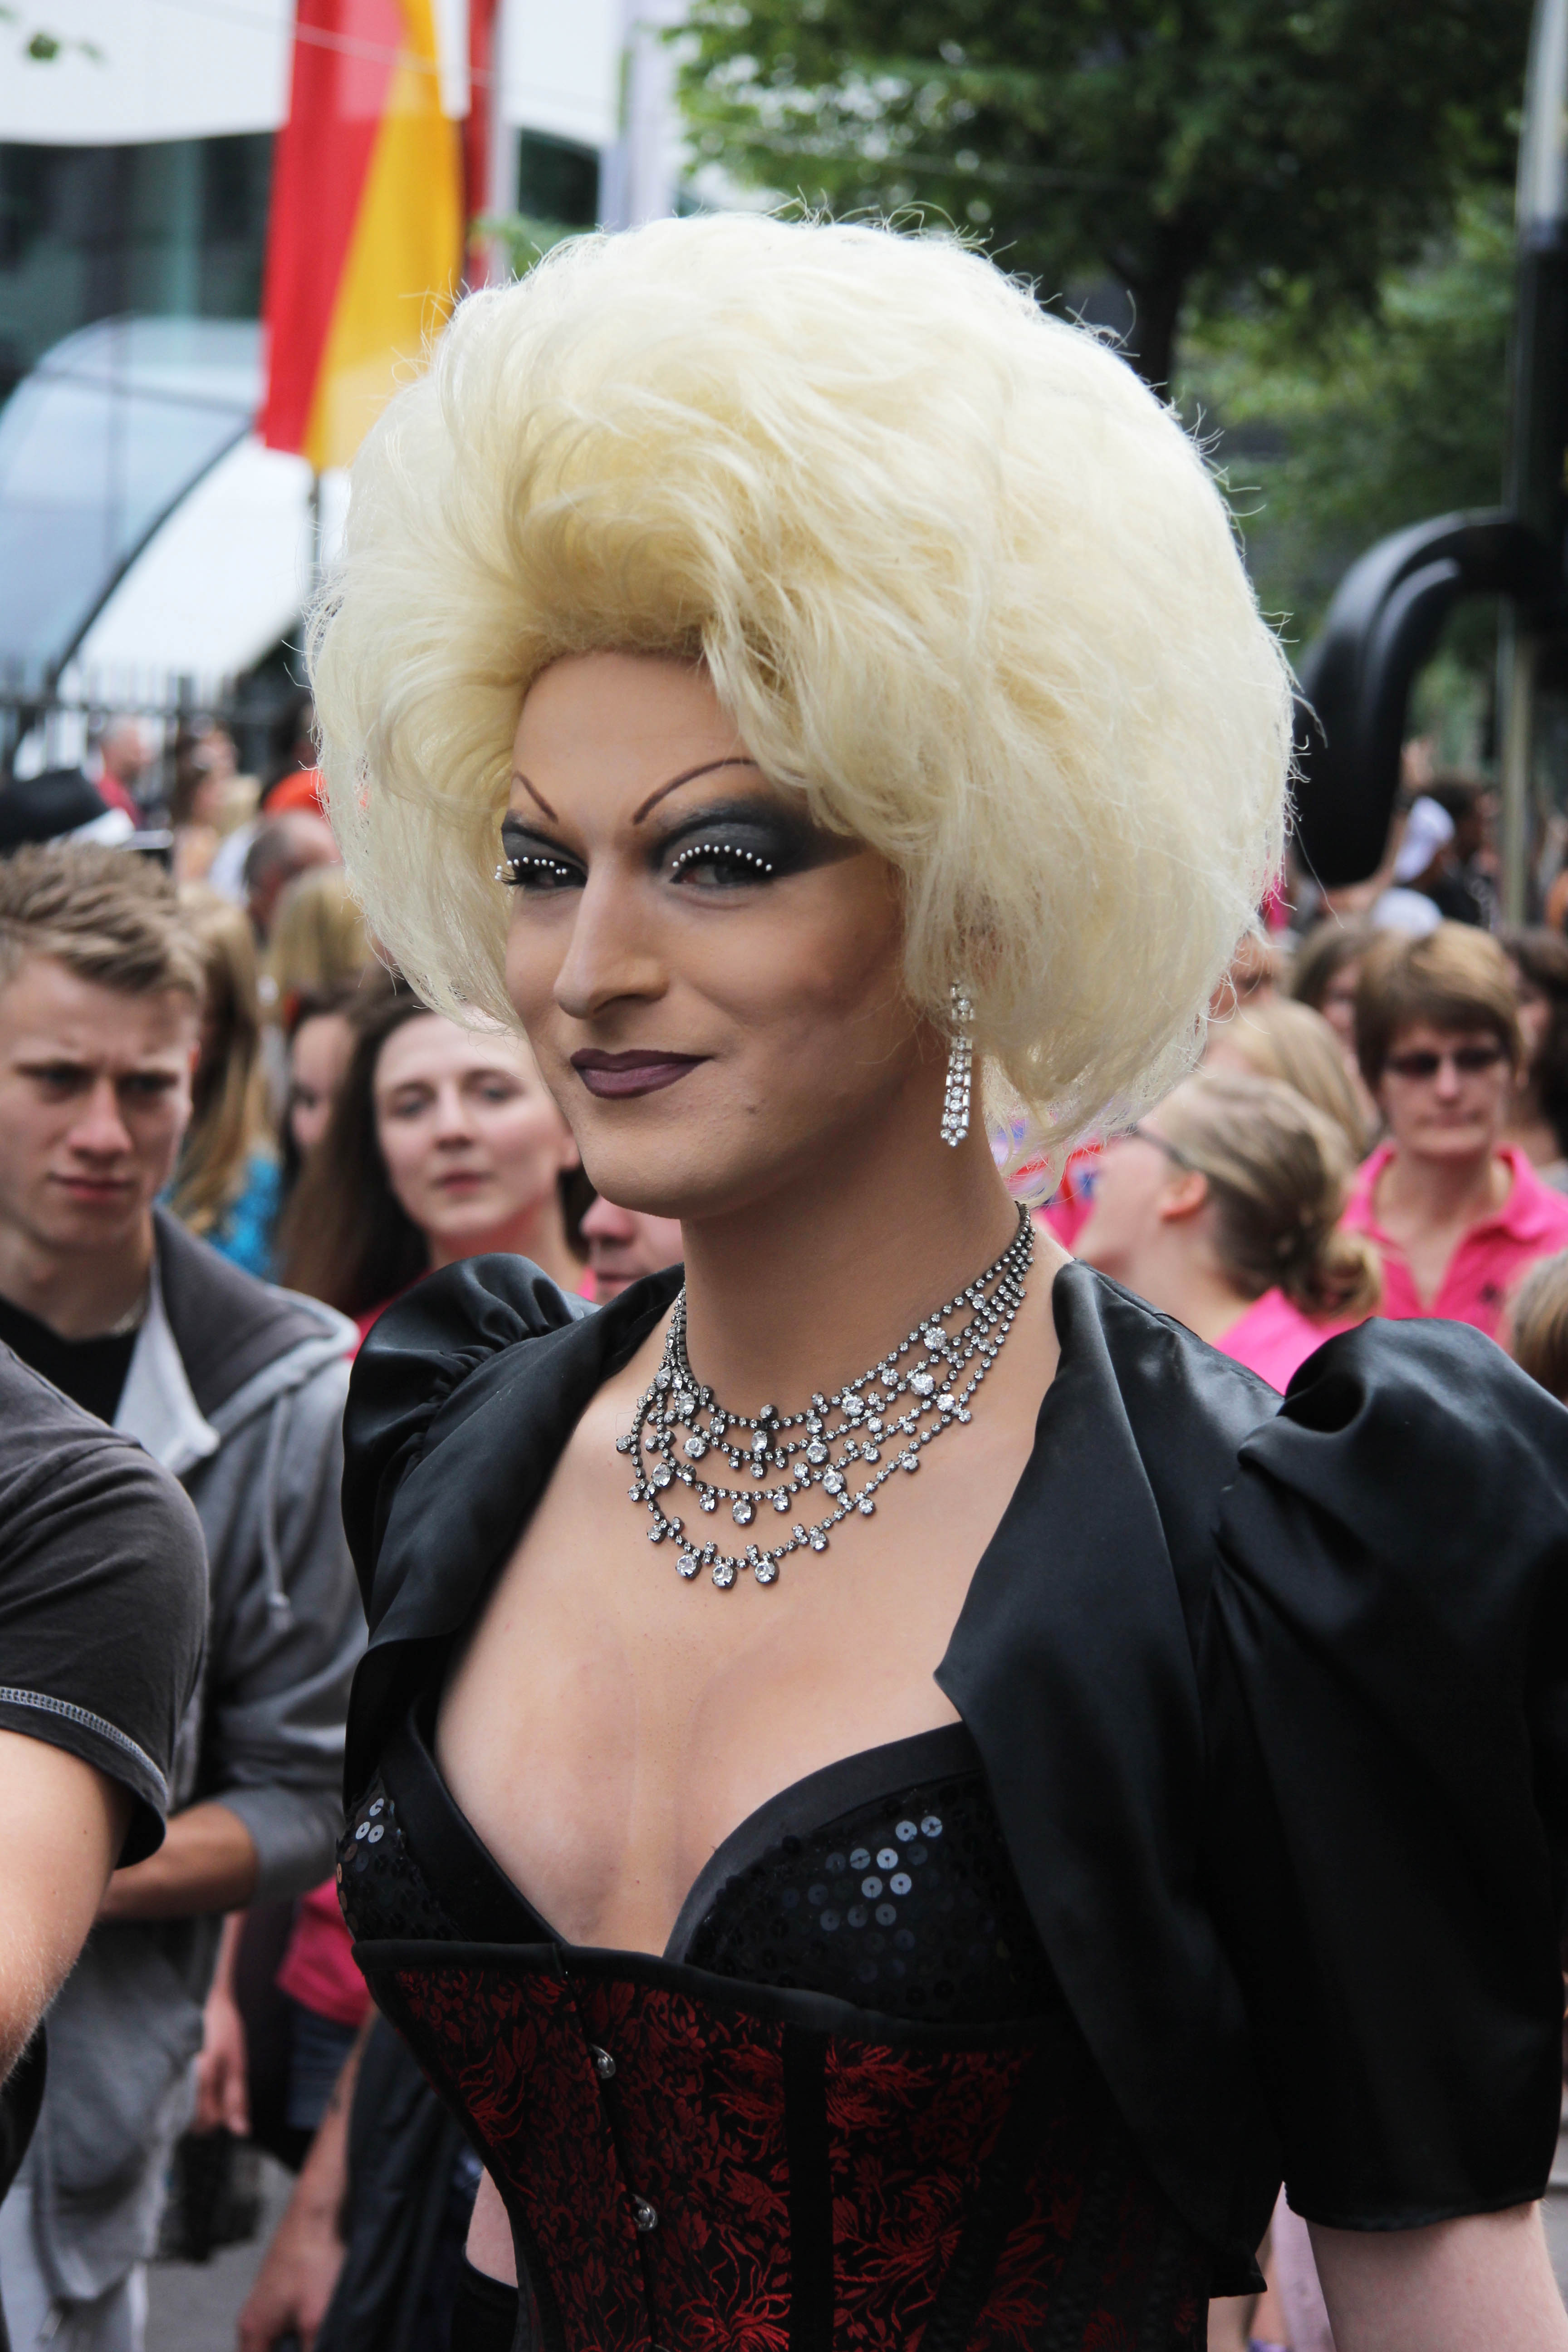 (Transvision) Vamp: A reveller at the Christopher Street Day (CSD) Parade in Berlin